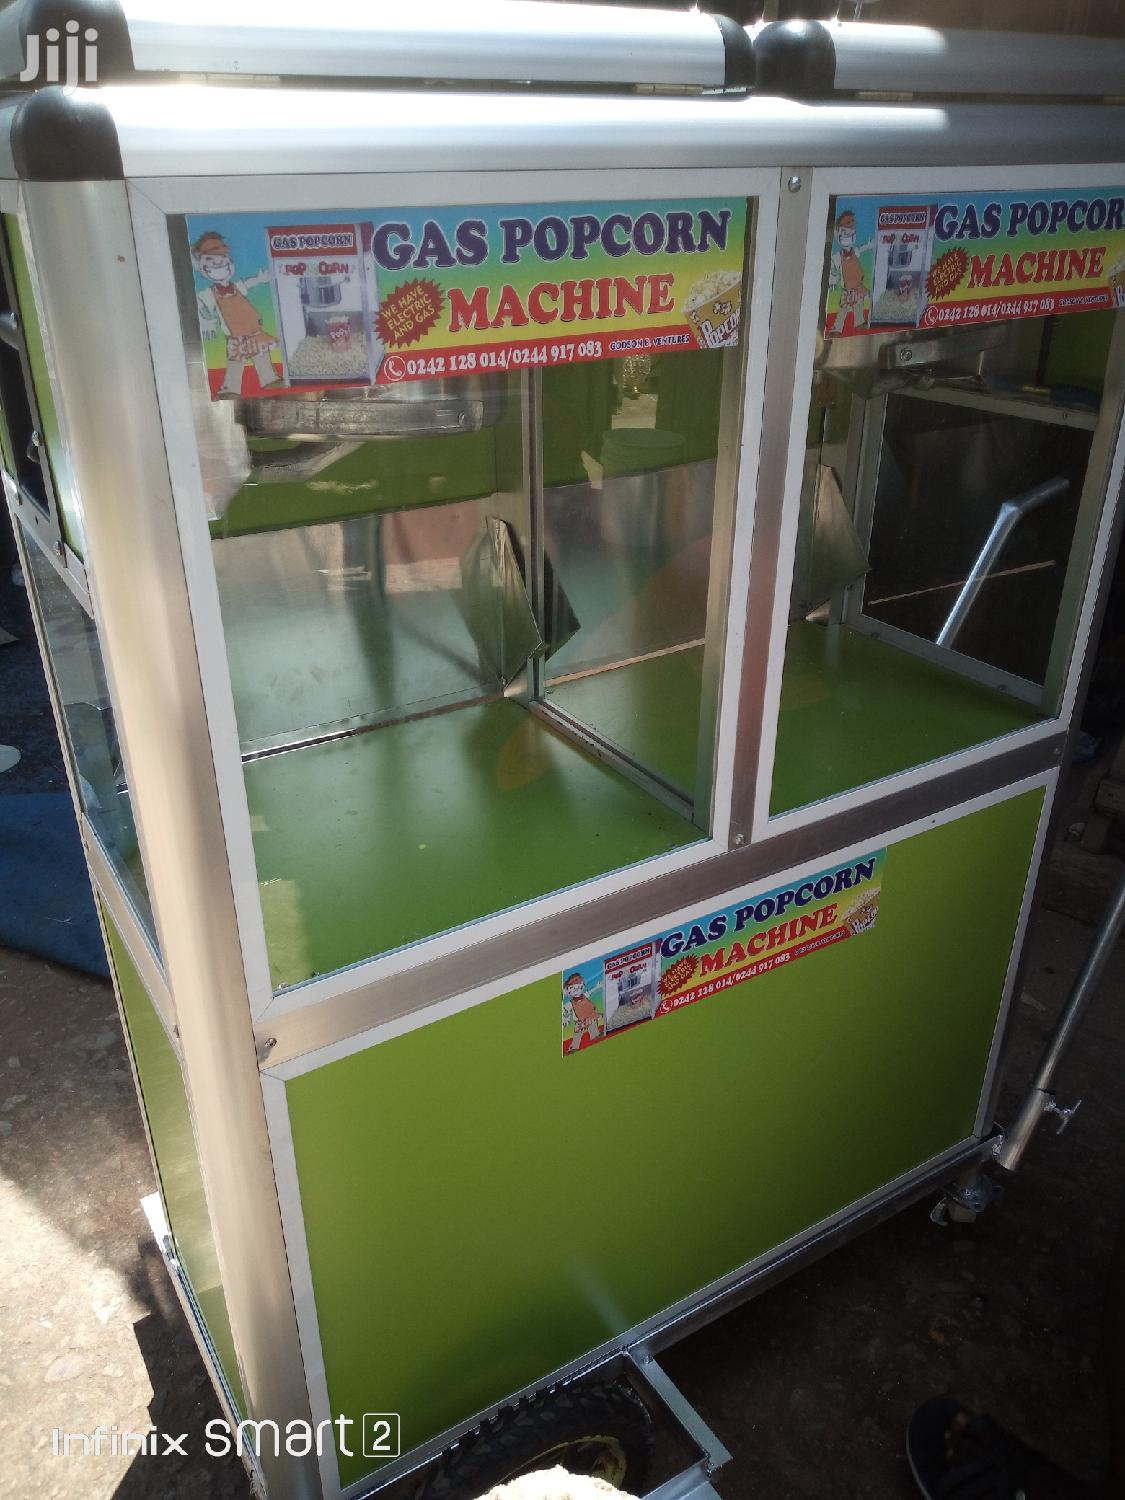 Quality Comecial Mobile Gas Popcorn Machines For Sale At Weija Barrier | Restaurant & Catering Equipment for sale in Ga West Municipal, Greater Accra, Ghana